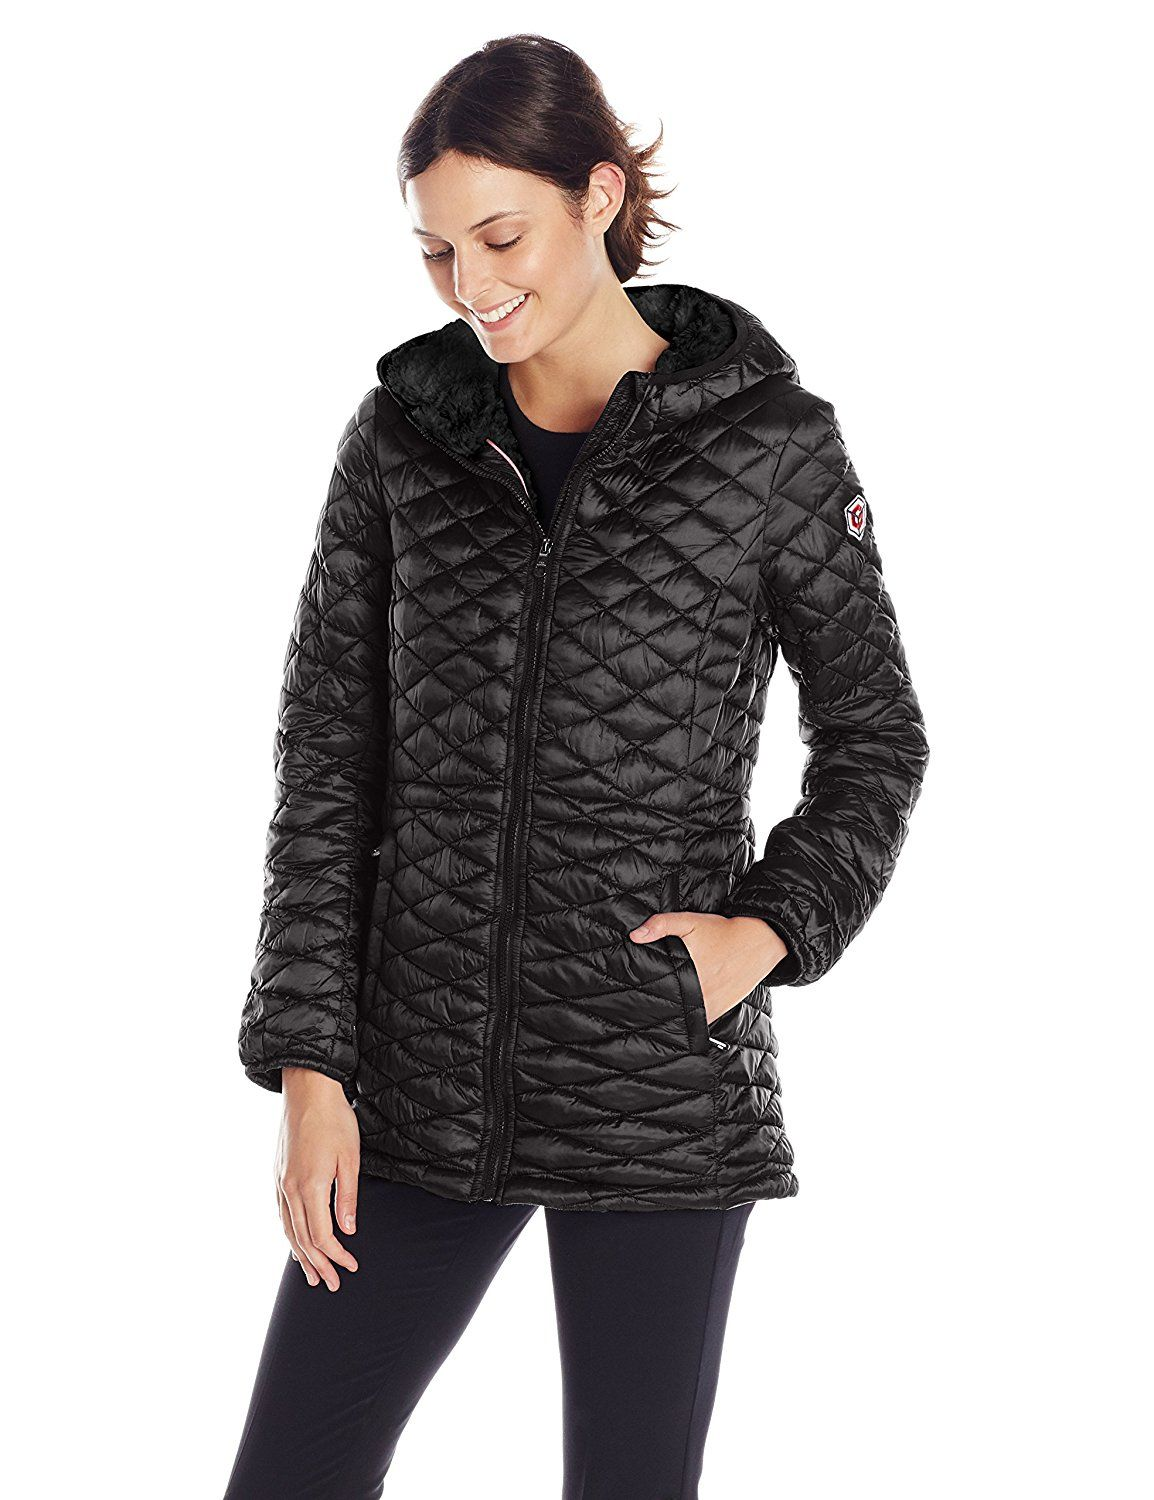 Steve Madden Women's Quilted Parka *** Check out this great